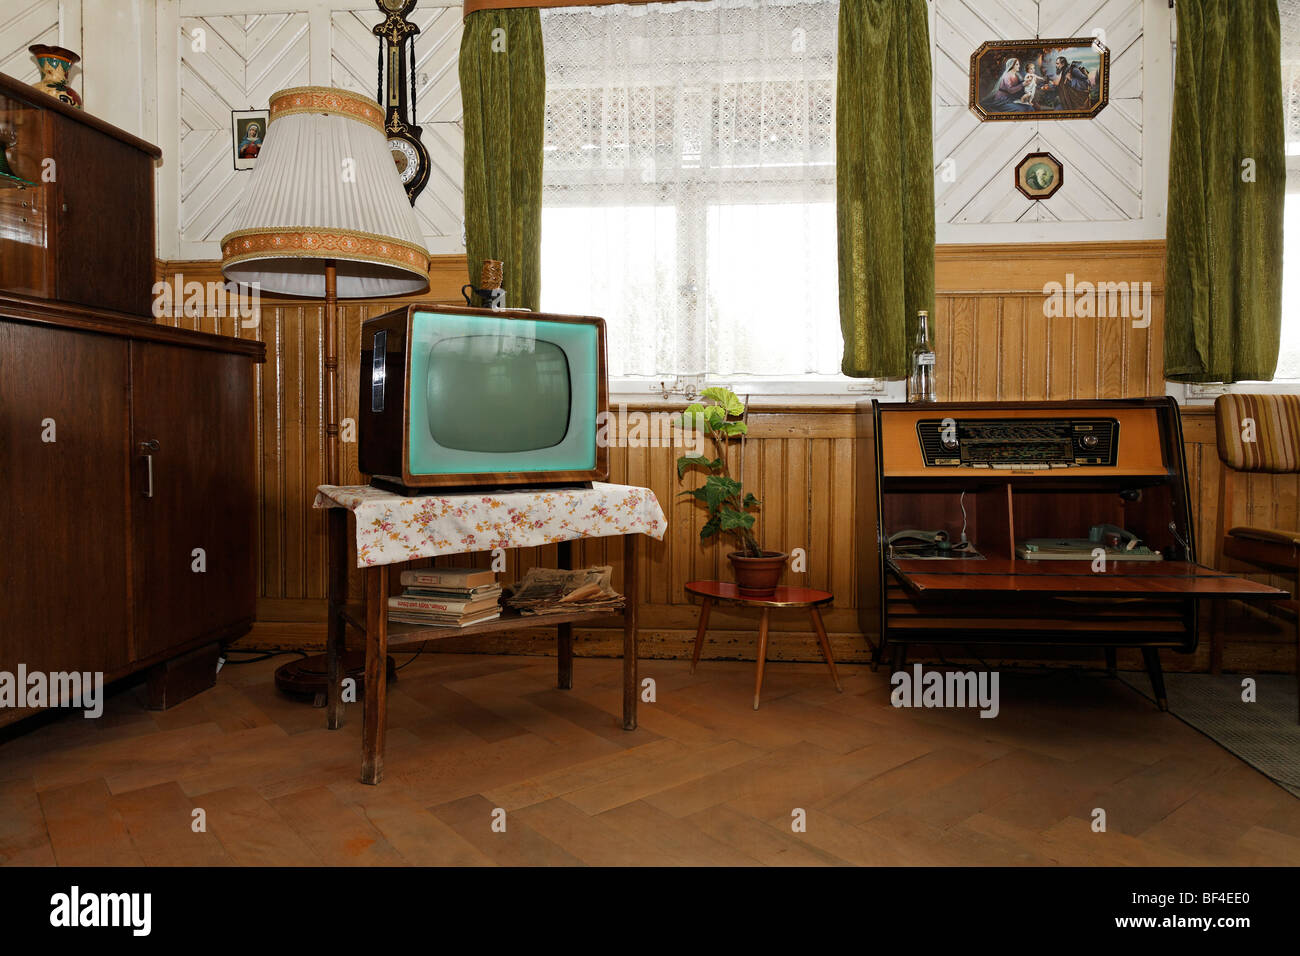 Living Room With Original Furniture From The U002750s, Old Black And White Tv,